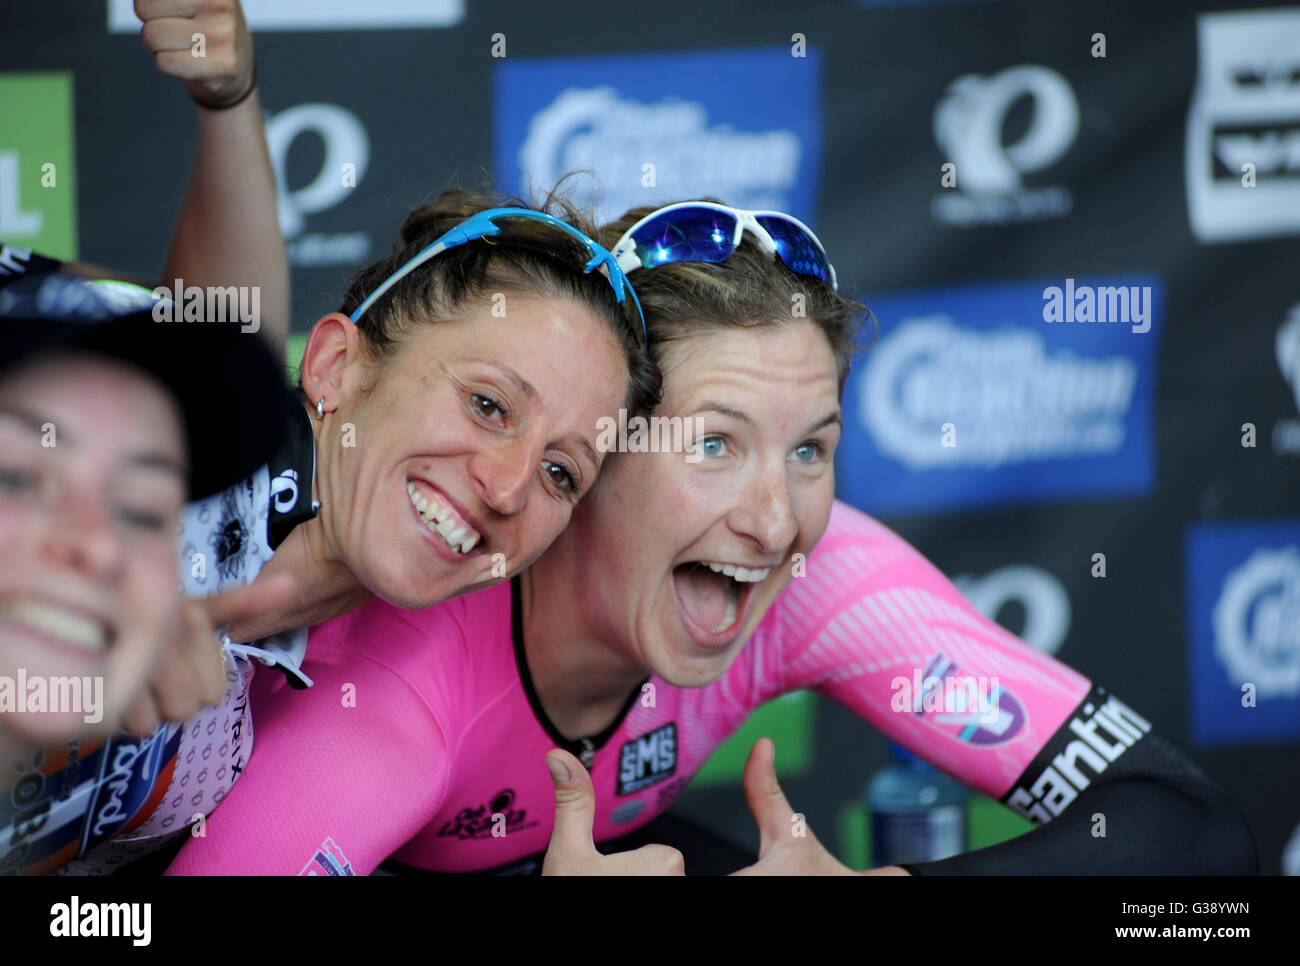 Portsmouth, Hampshire, UK, 9th June 2016. Overall Tour Series Sprint Winner Nikki Juniper of Ford Ecoboost (L) and Stock Photo